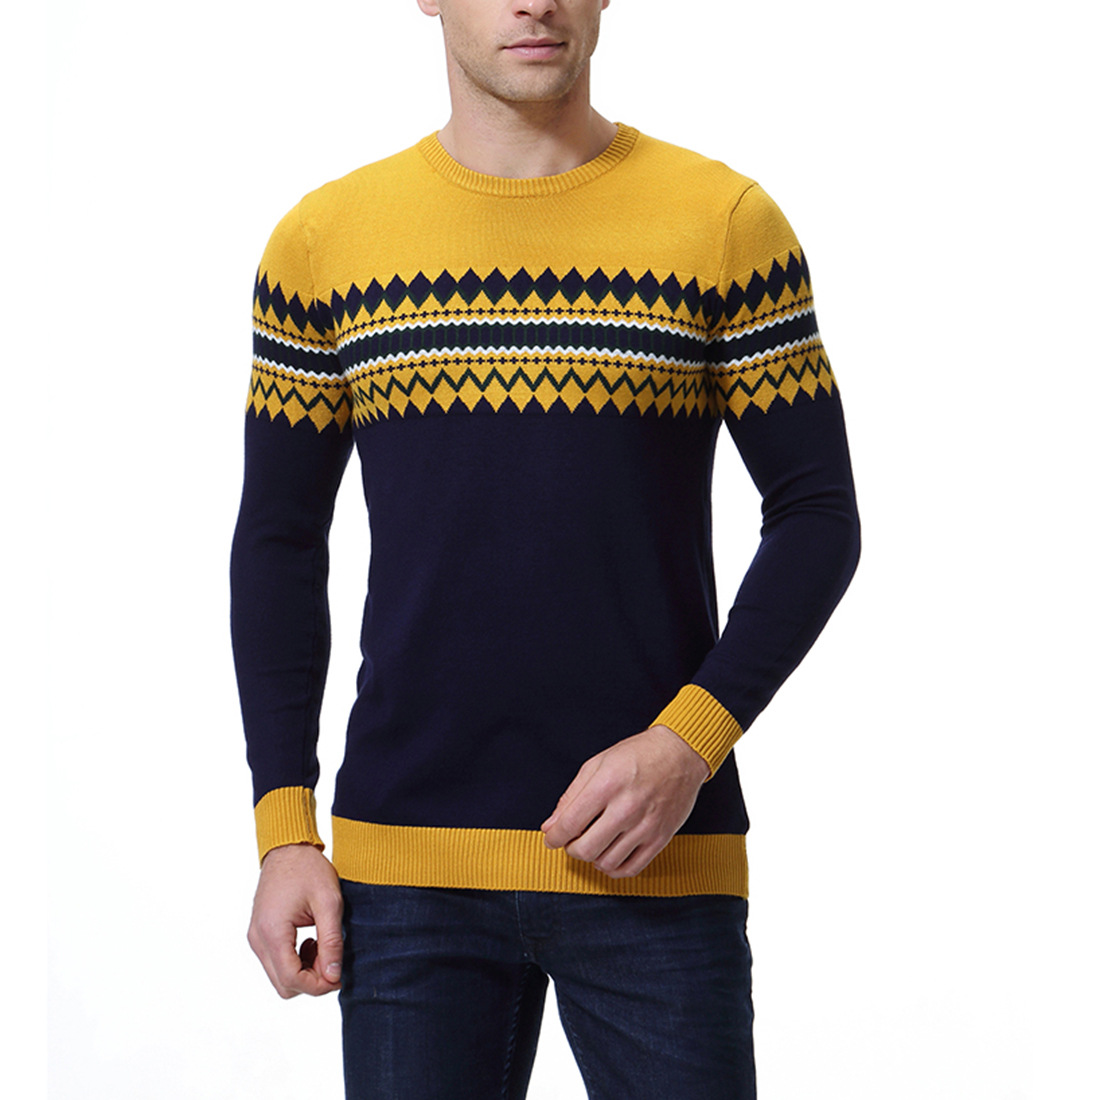 Sweater Men's Autumn Round Neck Sweater Colorblock Pullover Men's Sweater Y234